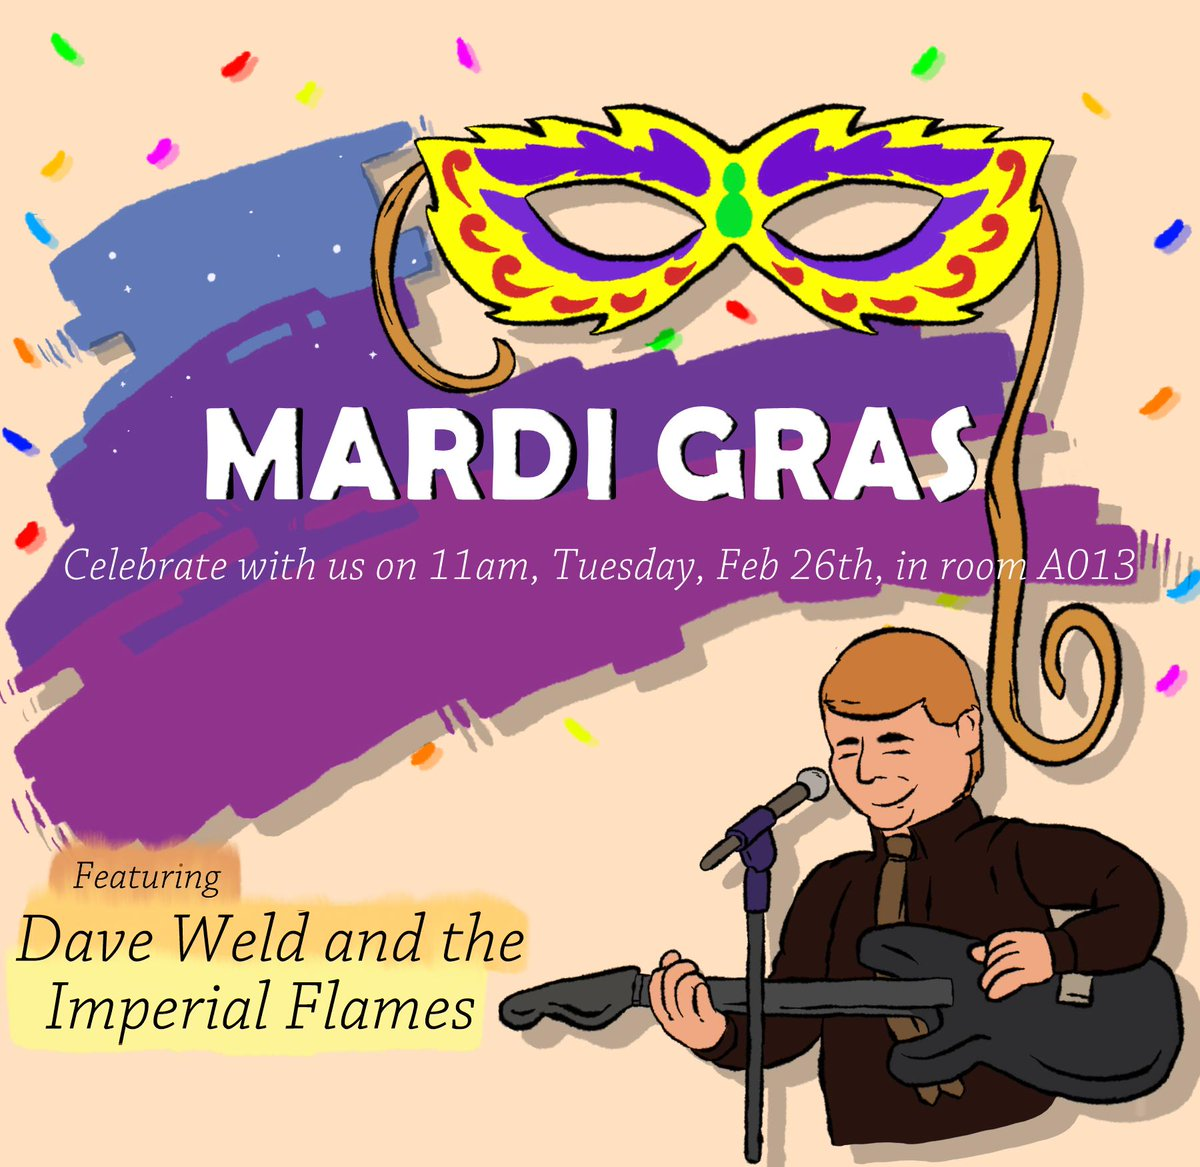 """test Twitter Media - Celebrate Mardi Gras with us!   We will be serving """"dirty rice"""" and """"jerk chicken"""", along with some jams provided by Dave Weld!   Come down to room A013 at 11pm on Tuesday, February 26th to have a blast! https://t.co/Tomuh0oQzf"""